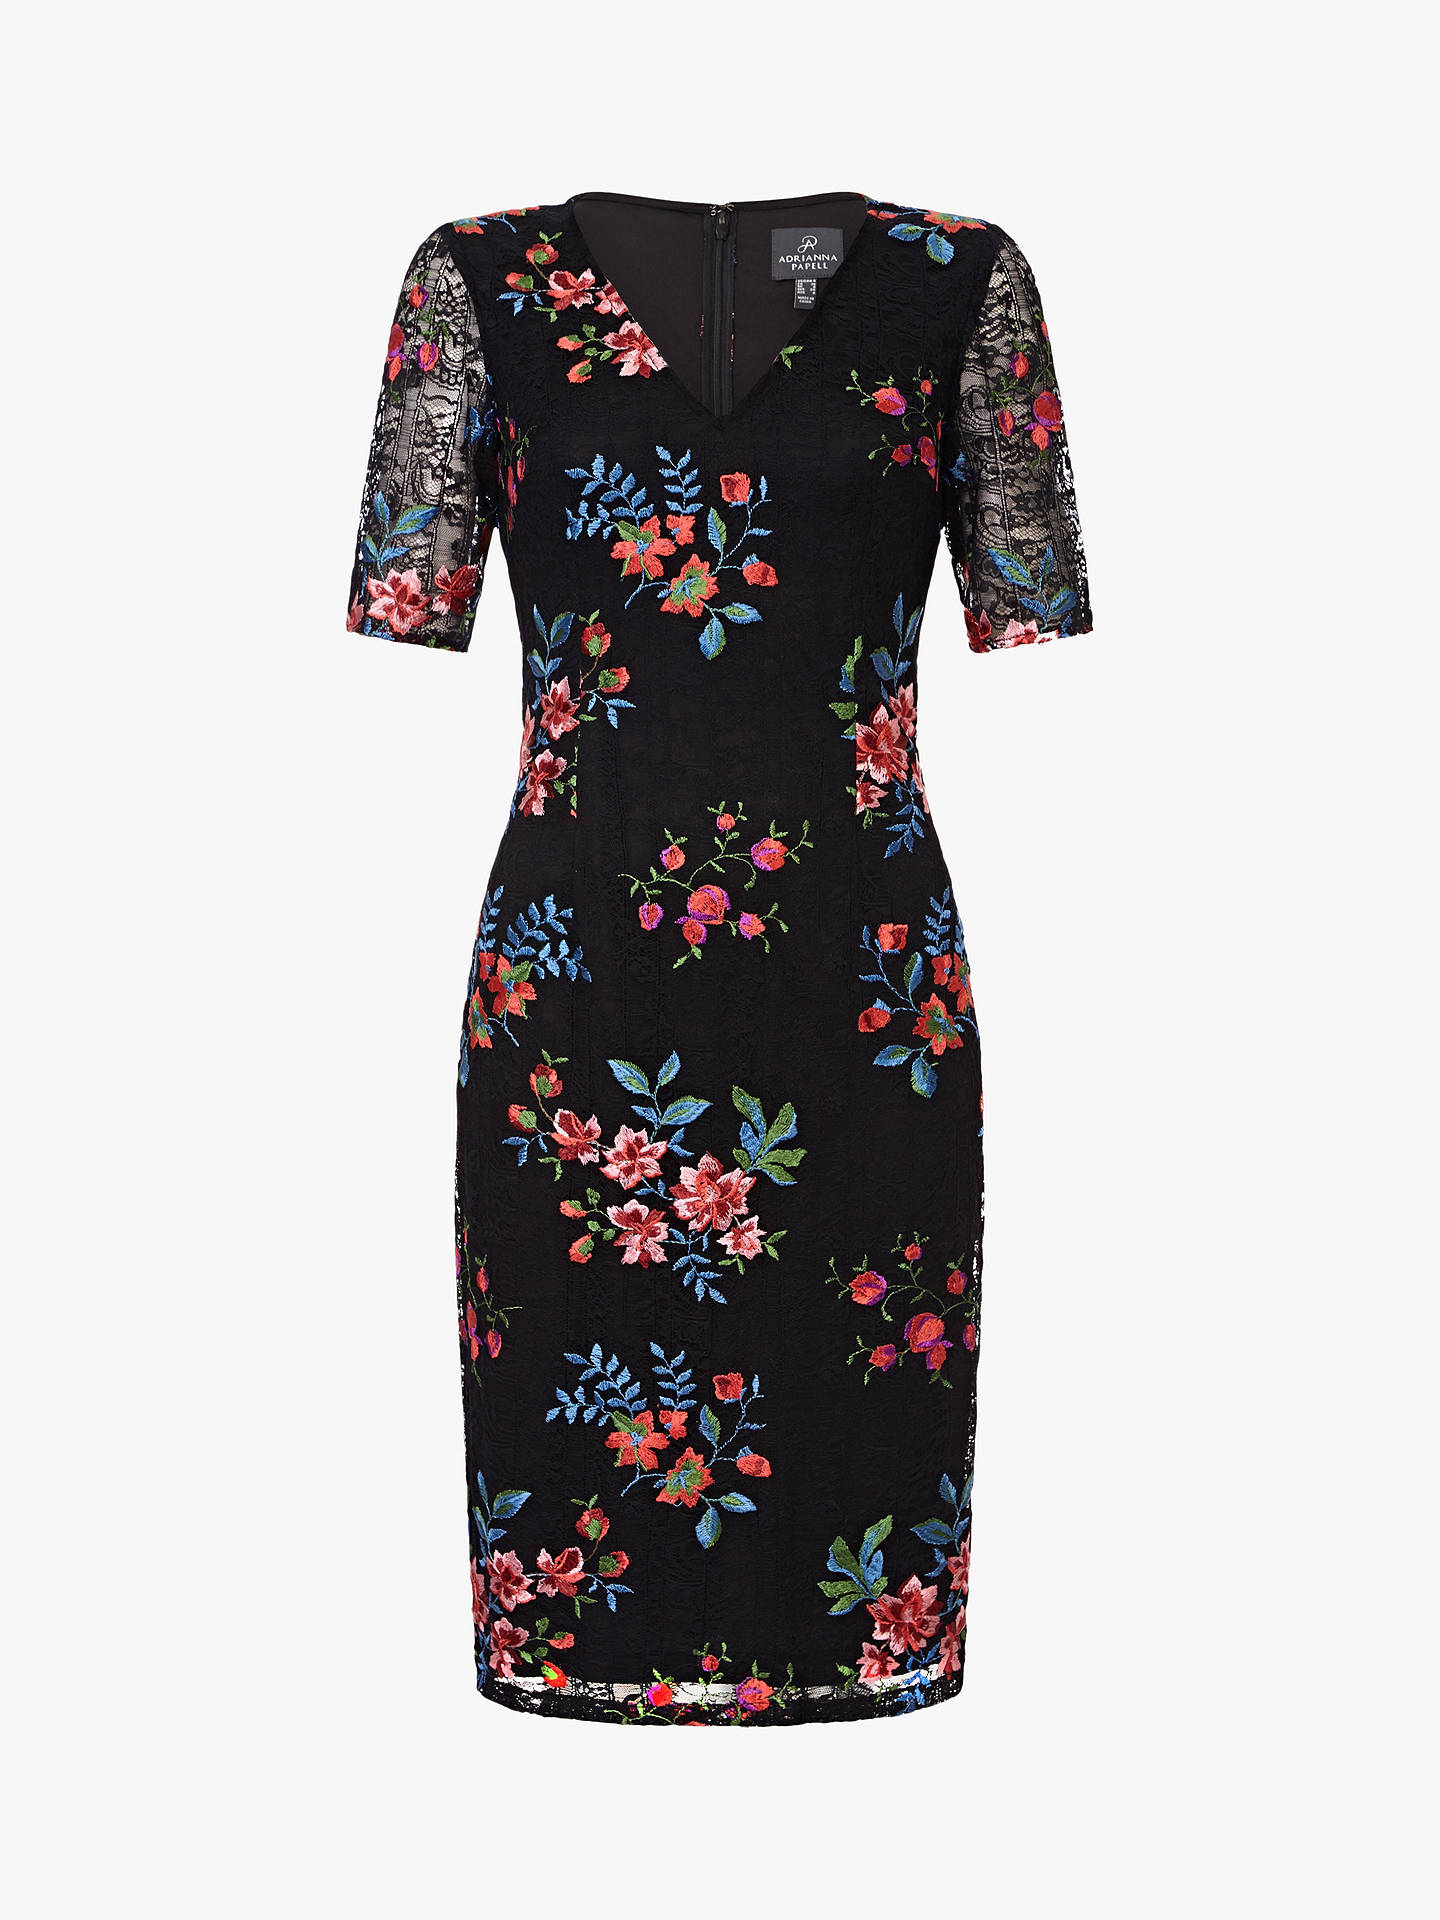 BuyAdrianna Papell Maria Sheath Dress, Black/Multi, 16 Online at johnlewis.com